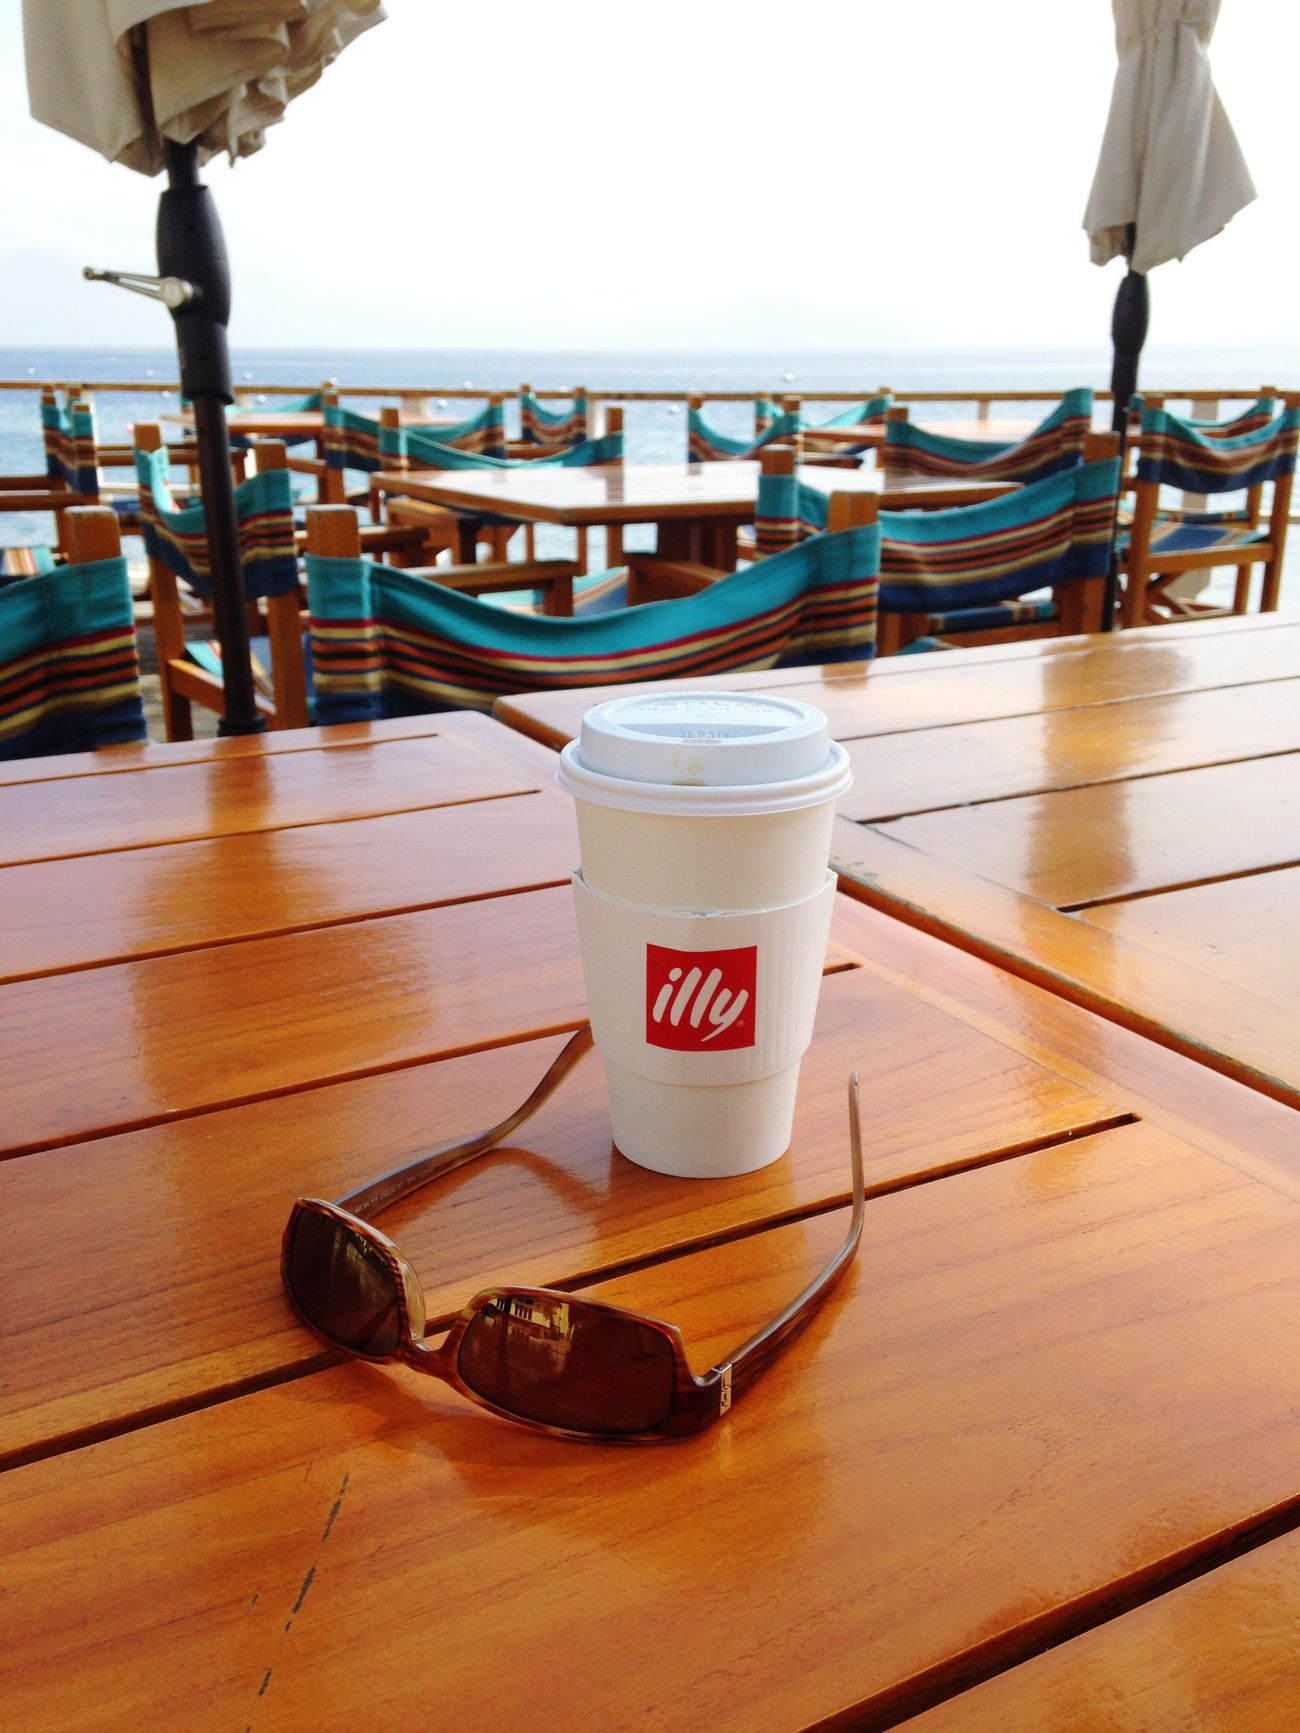 Resort Food And Drink Coffee Cup Off Season empty